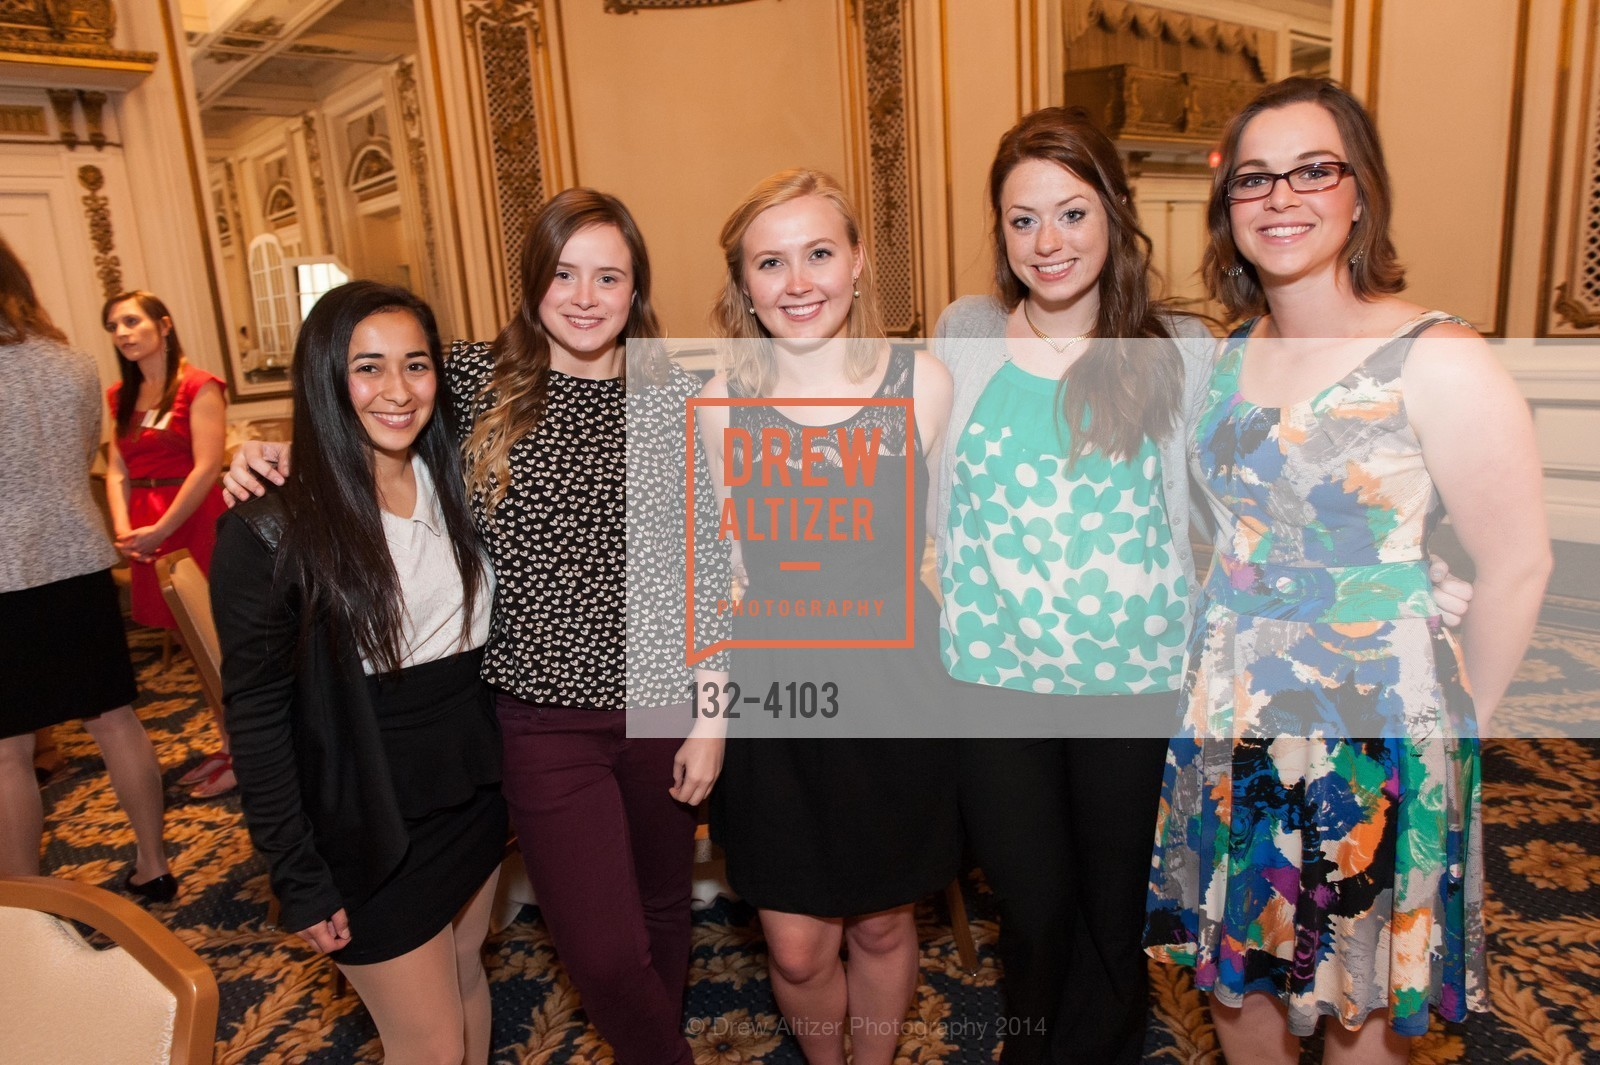 Jazmin Maya, Tory Wells, Hannah Thompson, Natalie Gallo, Allison Littlefield, Photo #132-4103